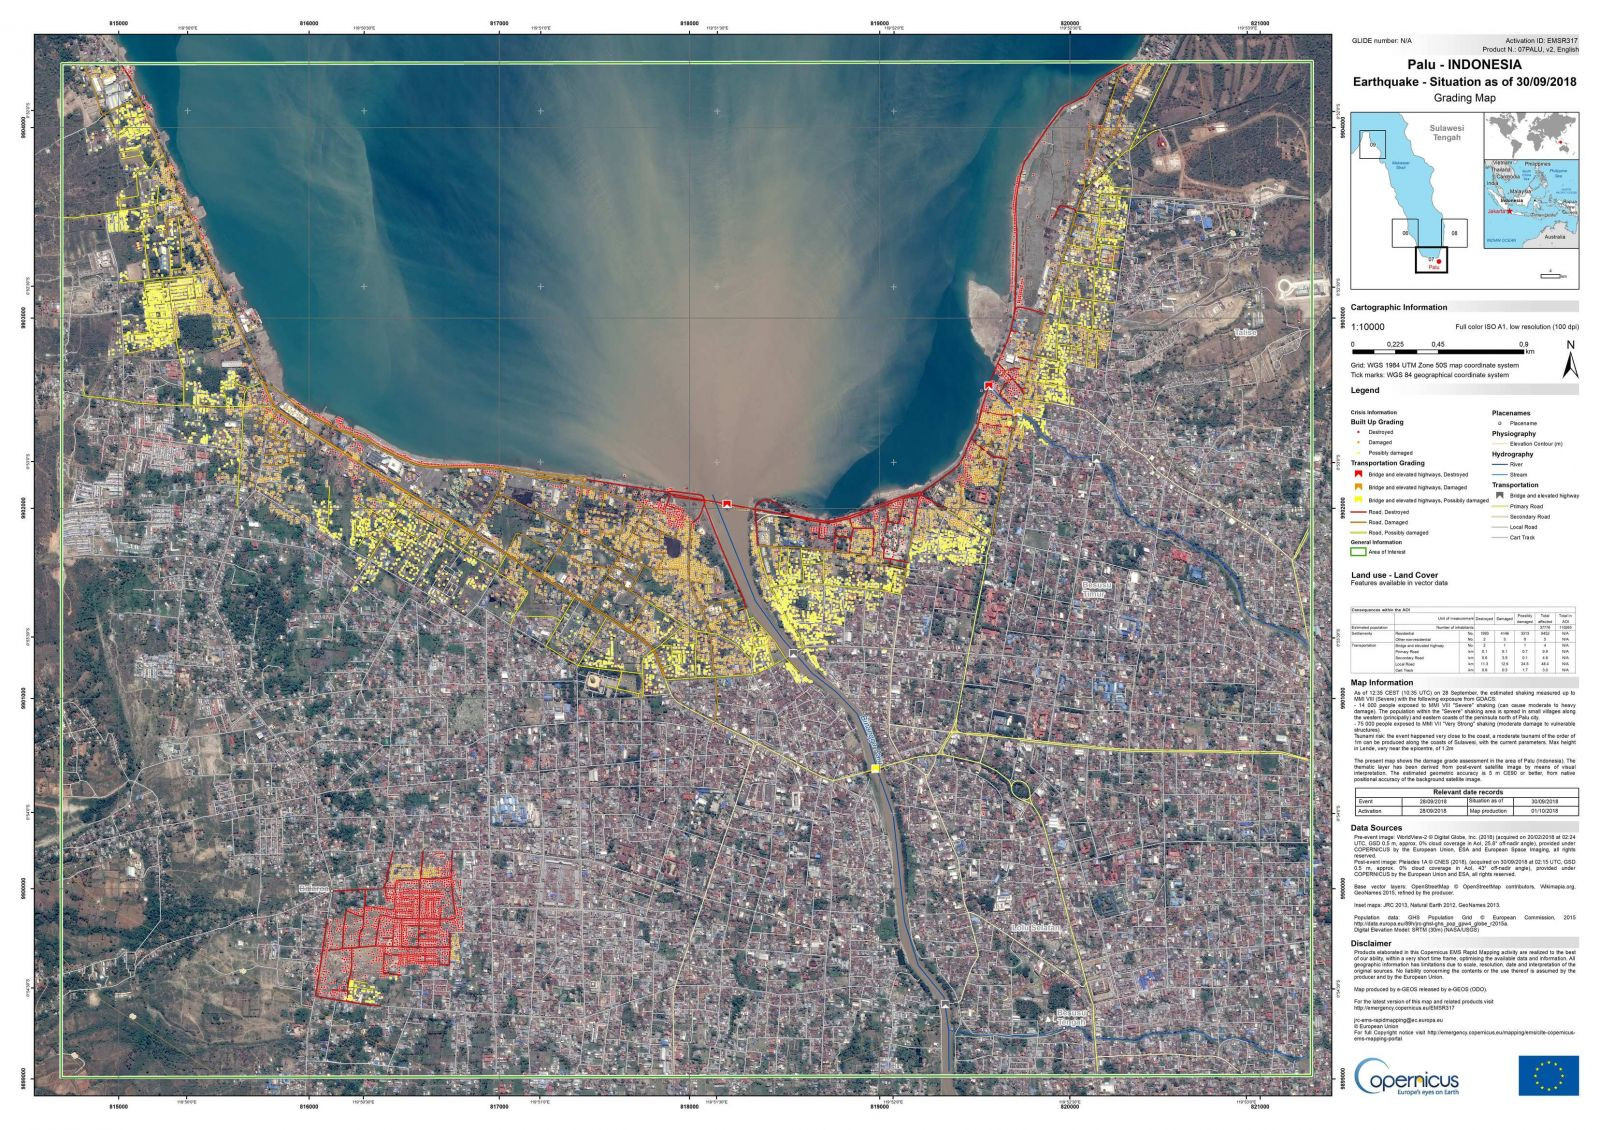 2018 October earthquake and tsunami in Indonesia: grading map of Palu city show that almost over 37,000 people, 10,000 buildings and other infrastructure were affected (Copernicus EMS © 2018 EU, [EMSR317] Palu: Grading Map)